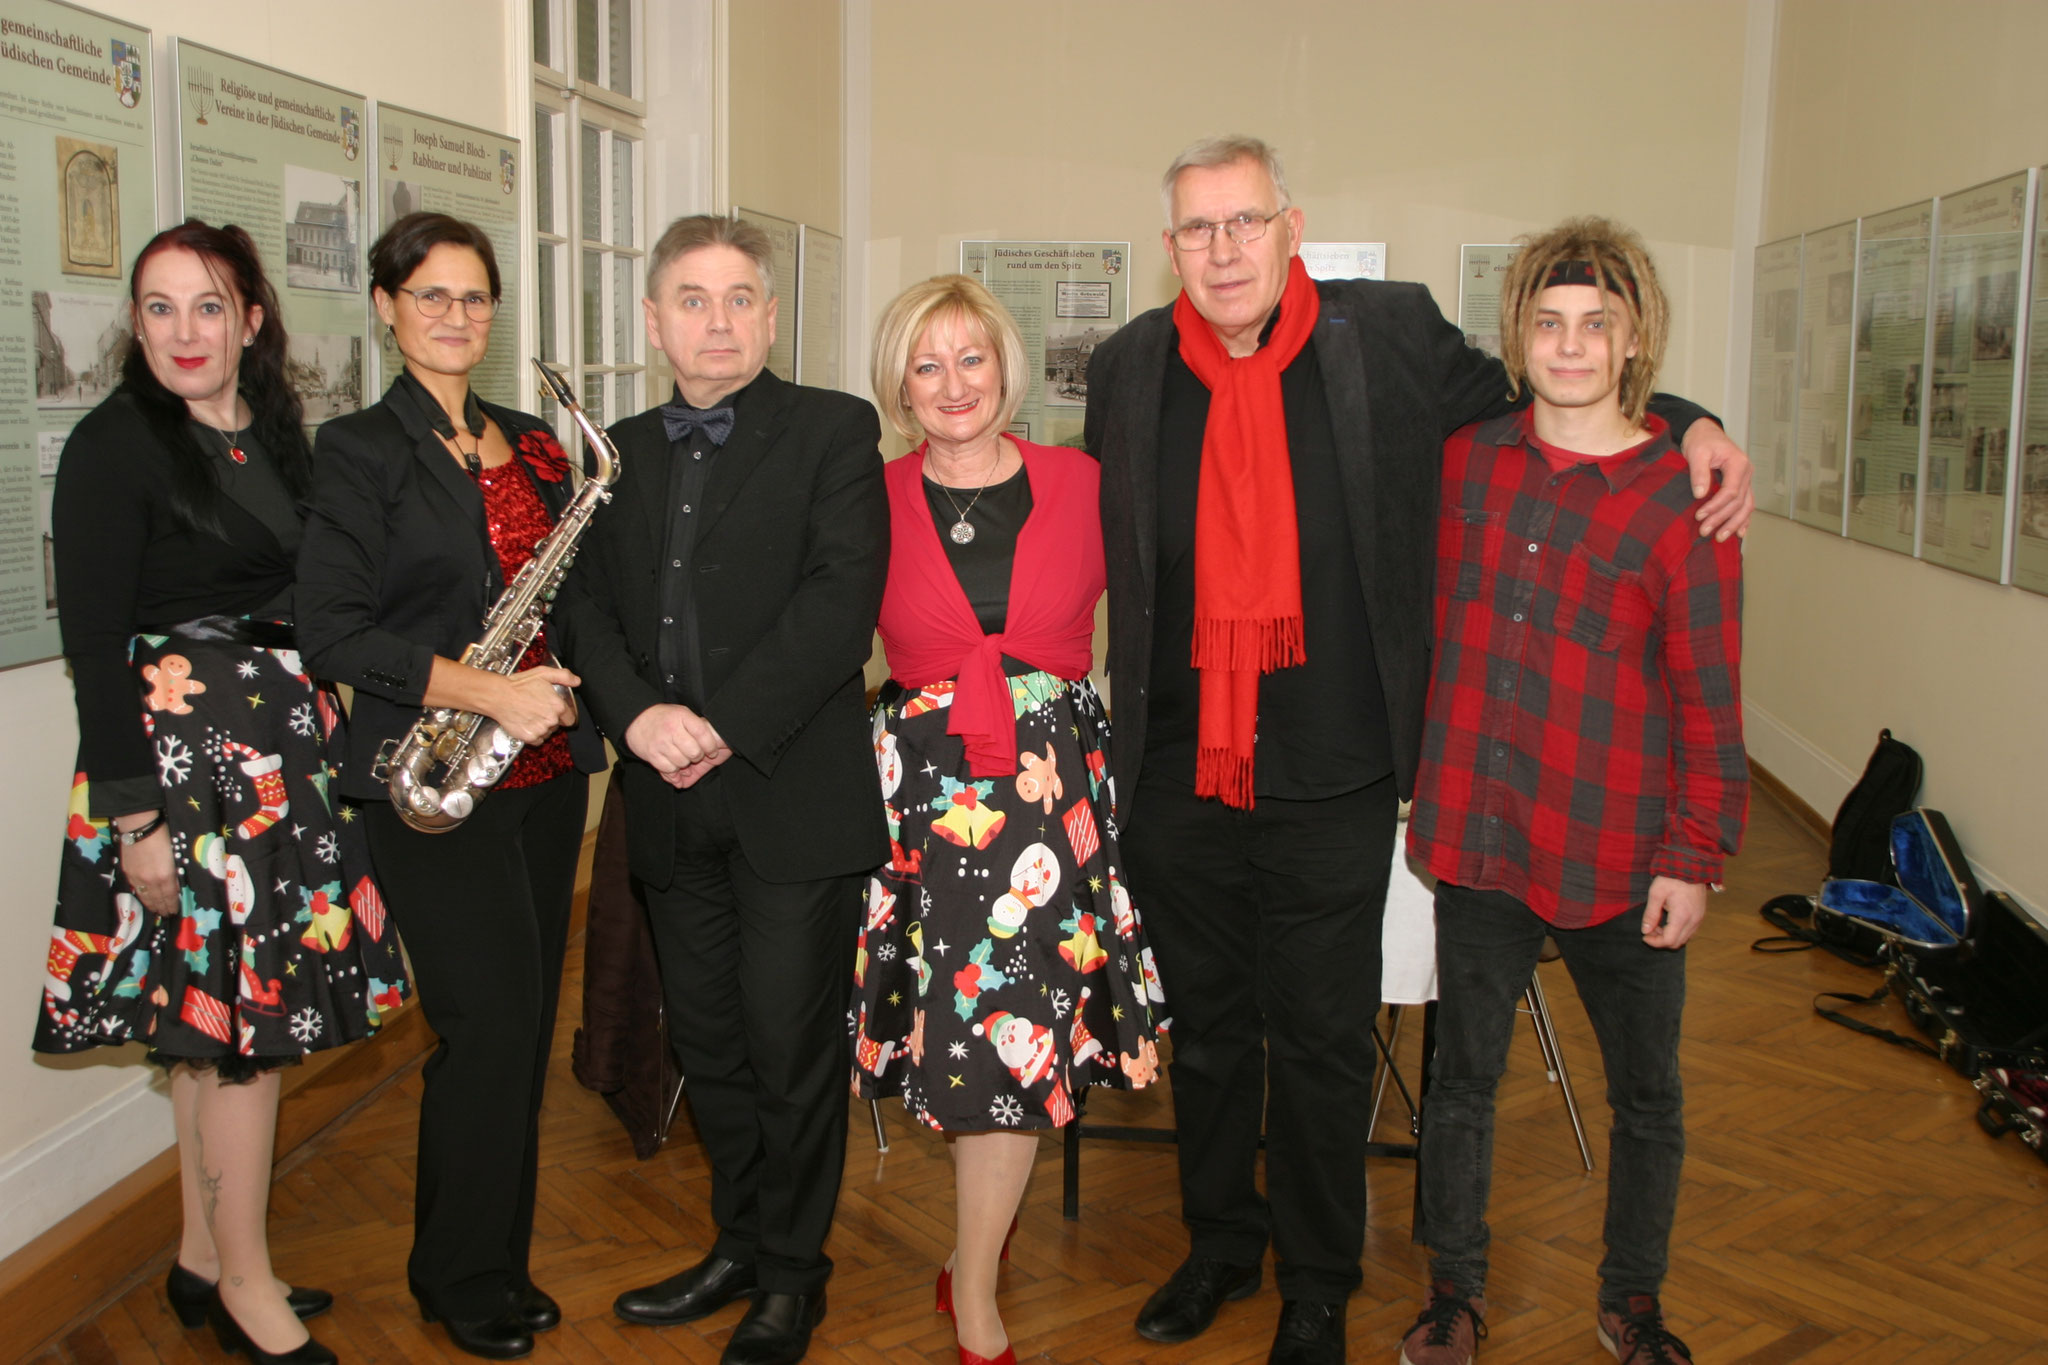 S(w)inging Christmas in Bezirksmuseum Floridsdorf